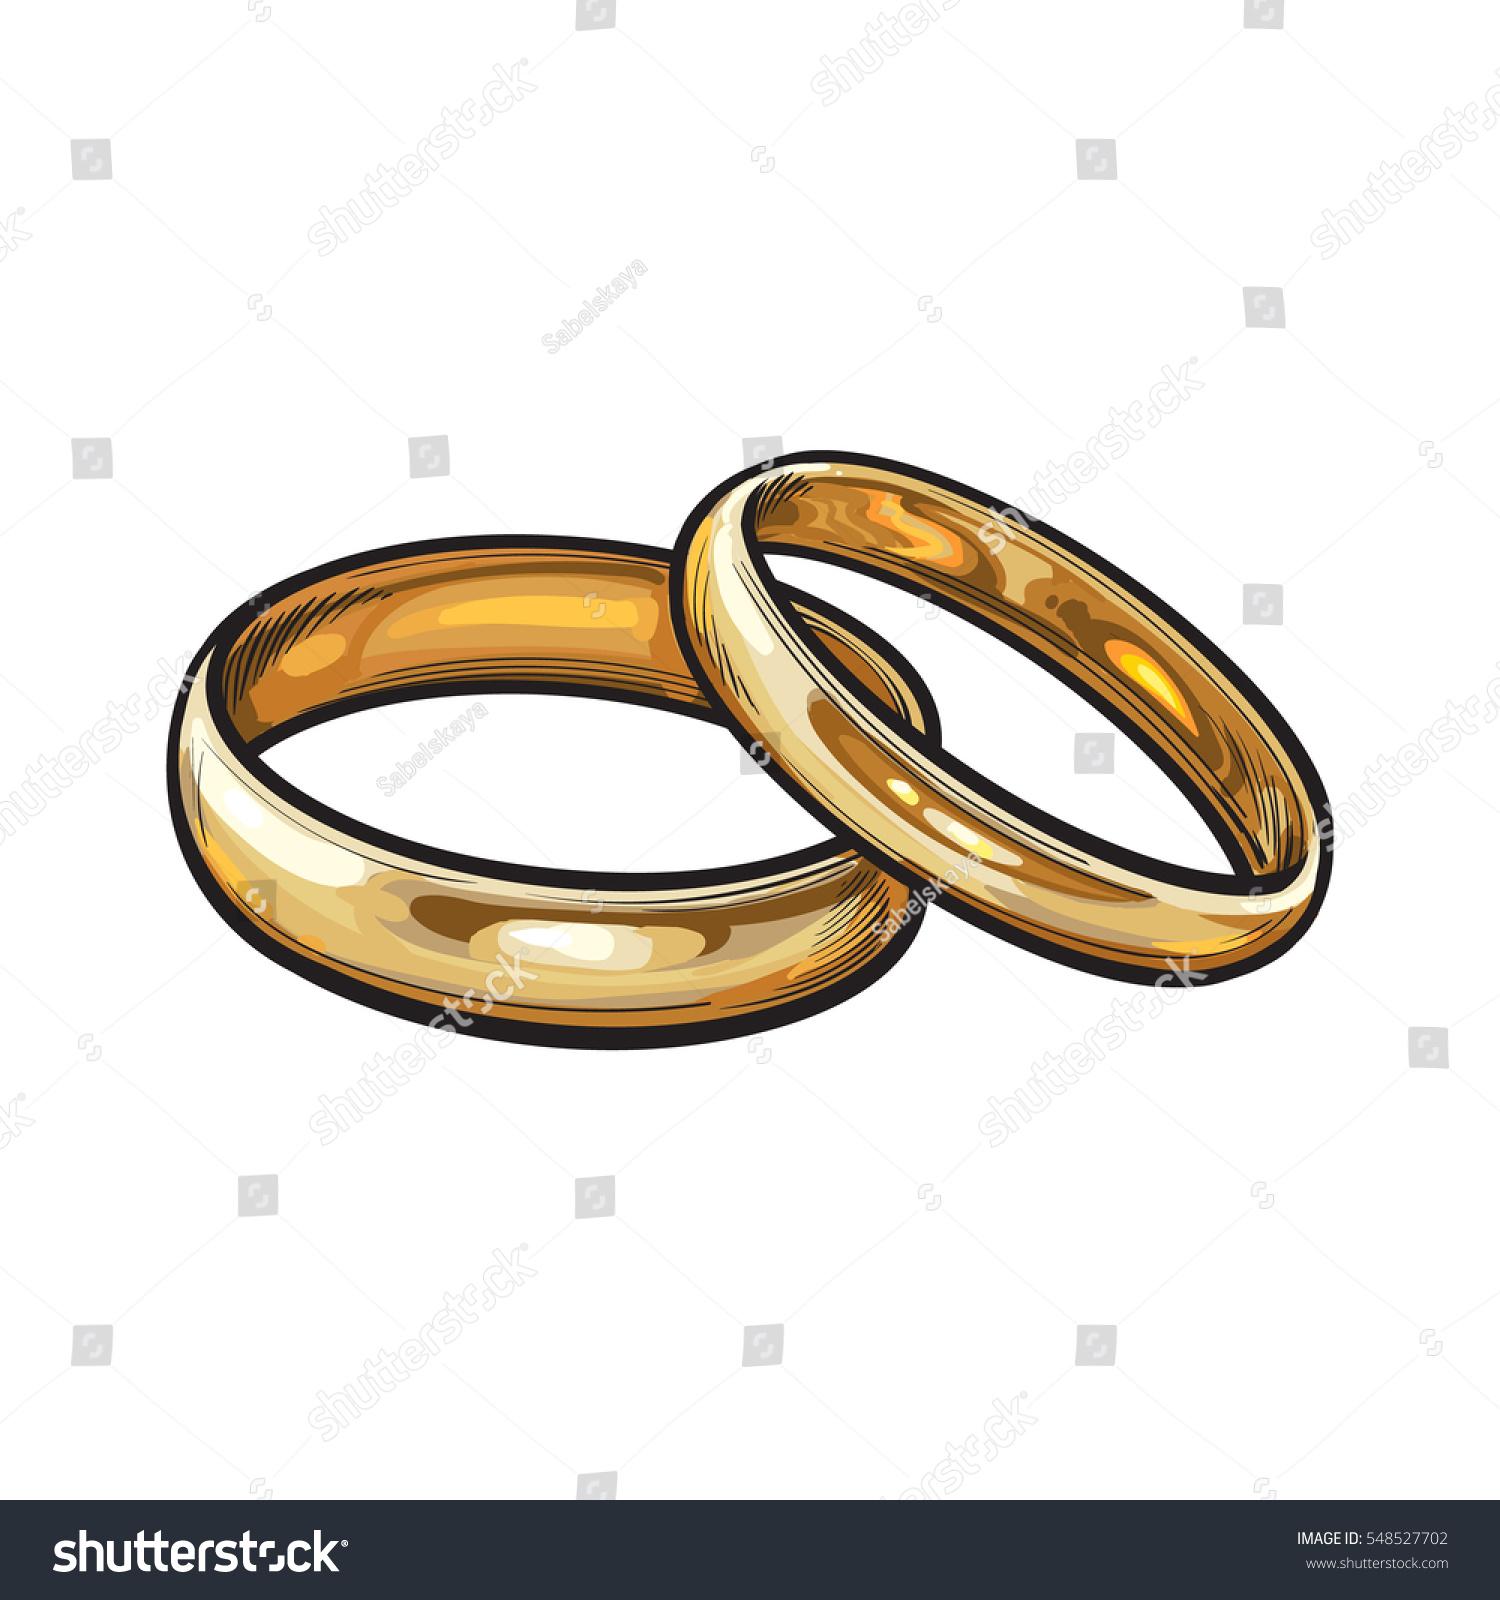 wedding of rings dl golden free cs stock photo srgb love download ring book pexels bible